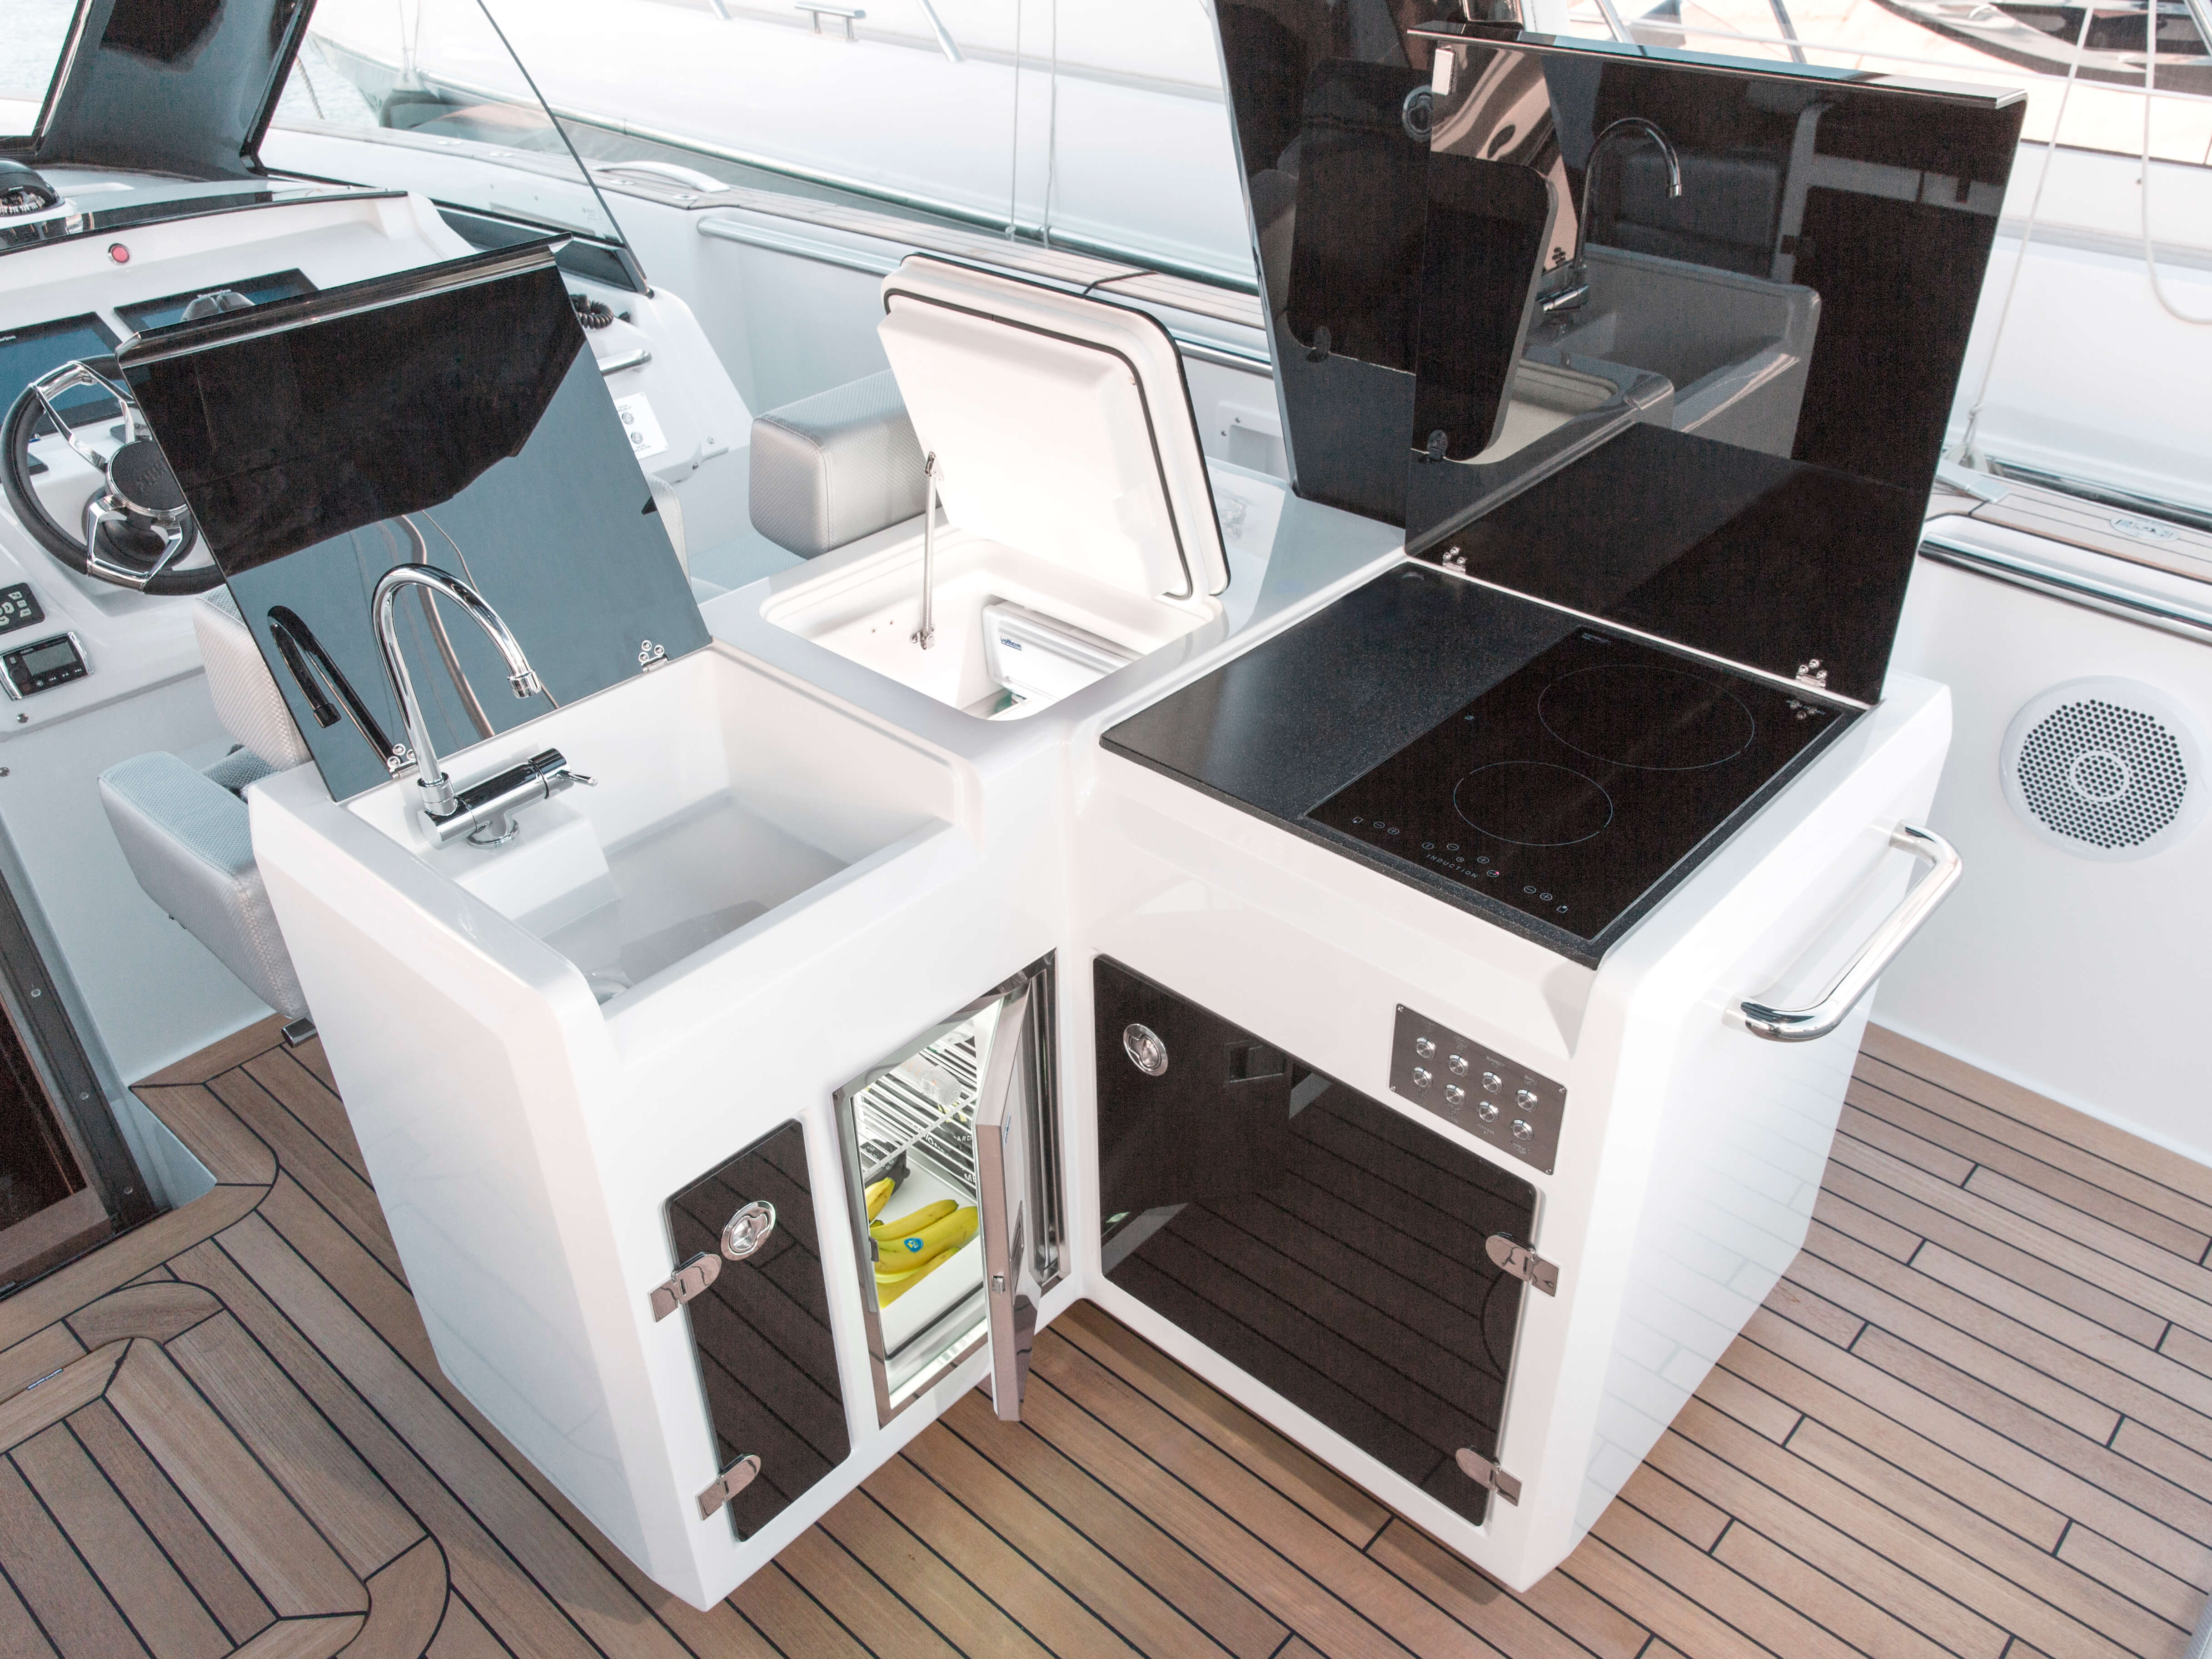 Fjord 48 open Exterior at anchor | galley with front opening fridge and 2 burners stove | Fjord